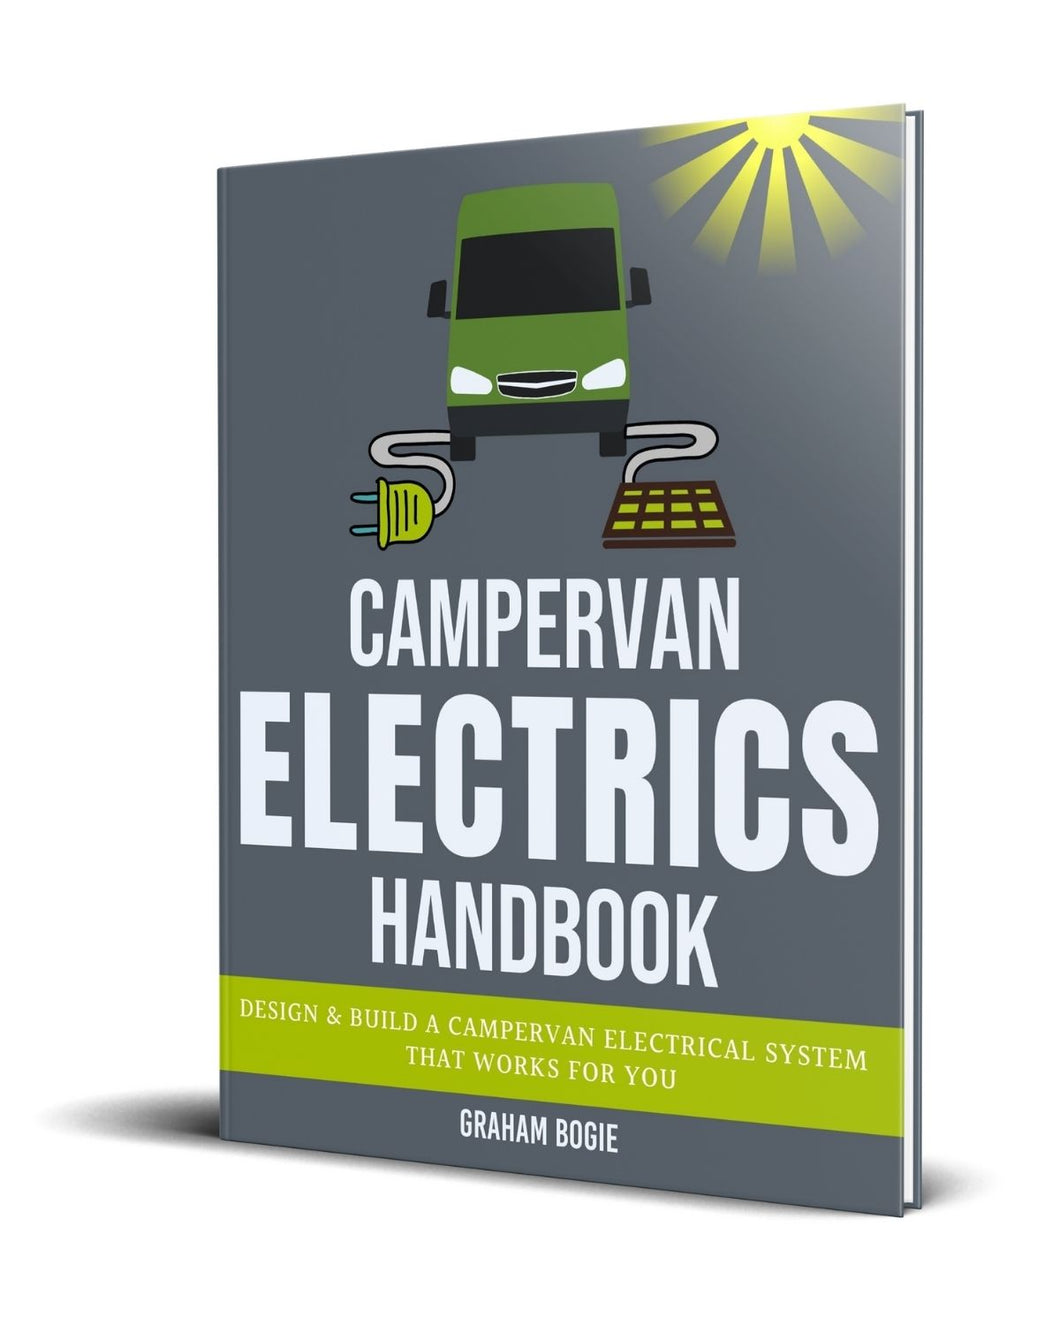 Campervan Electrics Handbook